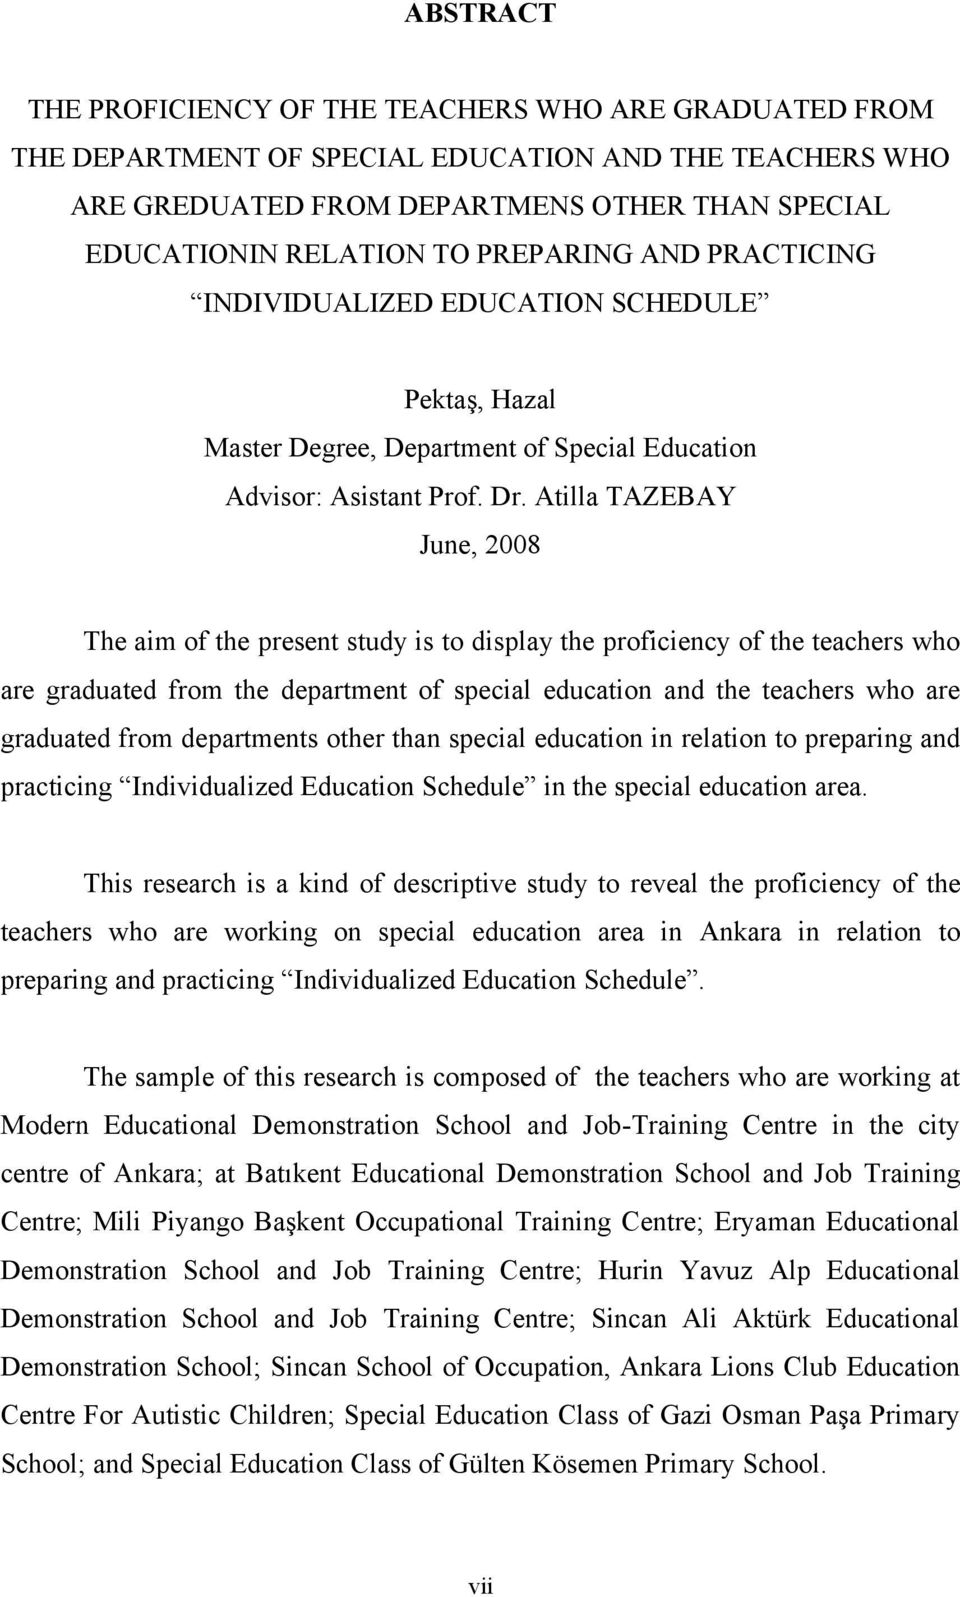 Atilla TAZEBAY June, 2008 The aim of the present study is to display the proficiency of the teachers who are graduated from the department of special education and the teachers who are graduated from